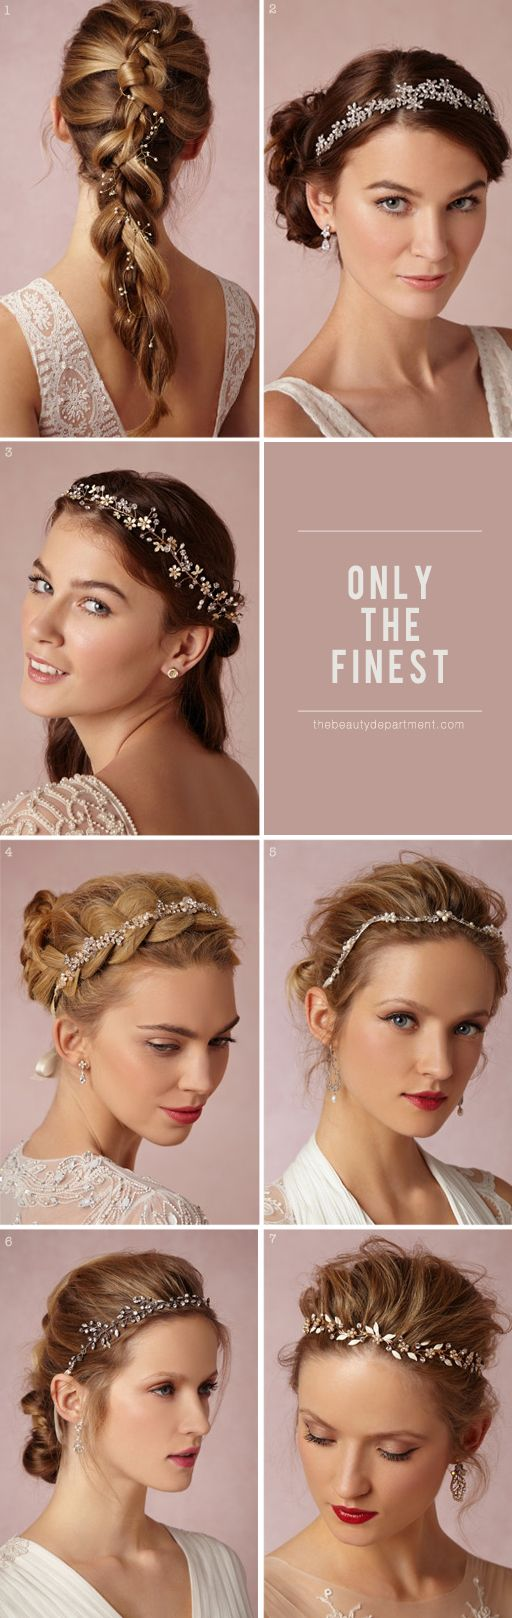 bride hair accessories -- Sakura Halo, Portici Halo, Buttercup Halo, Pearl Petal Halo, Waterway Halo, Starry Skies Halo, Bluebell Halo,